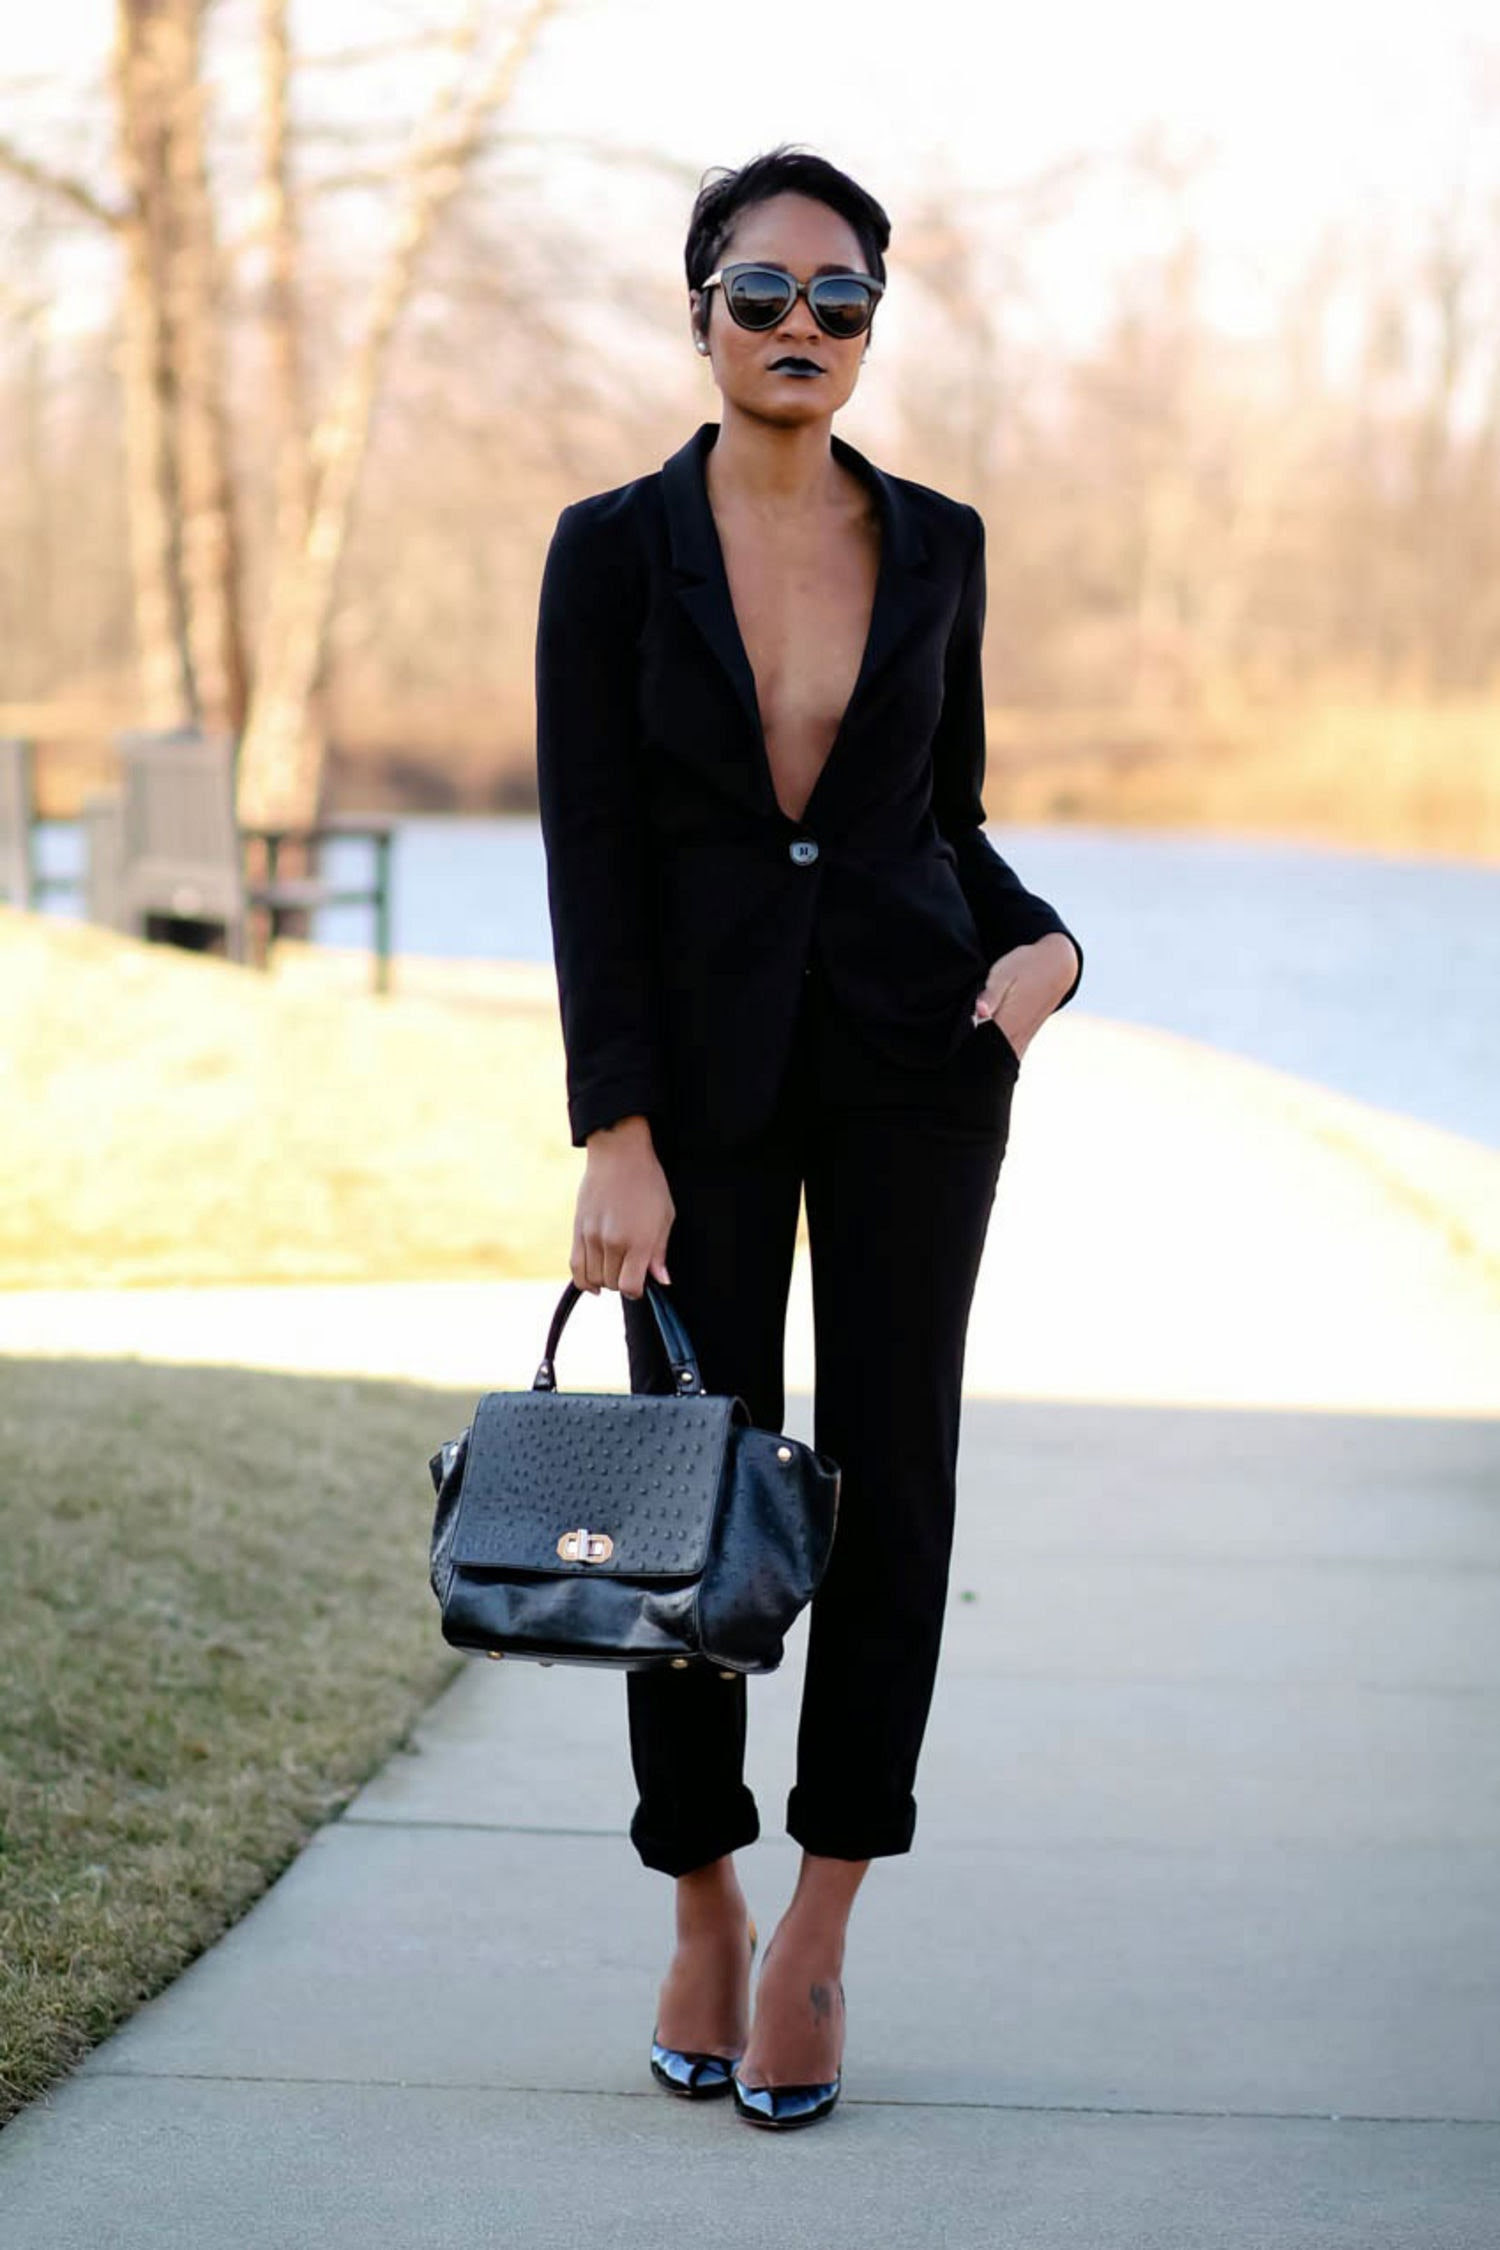 valentine's day datenight outfit ideas from our favorite